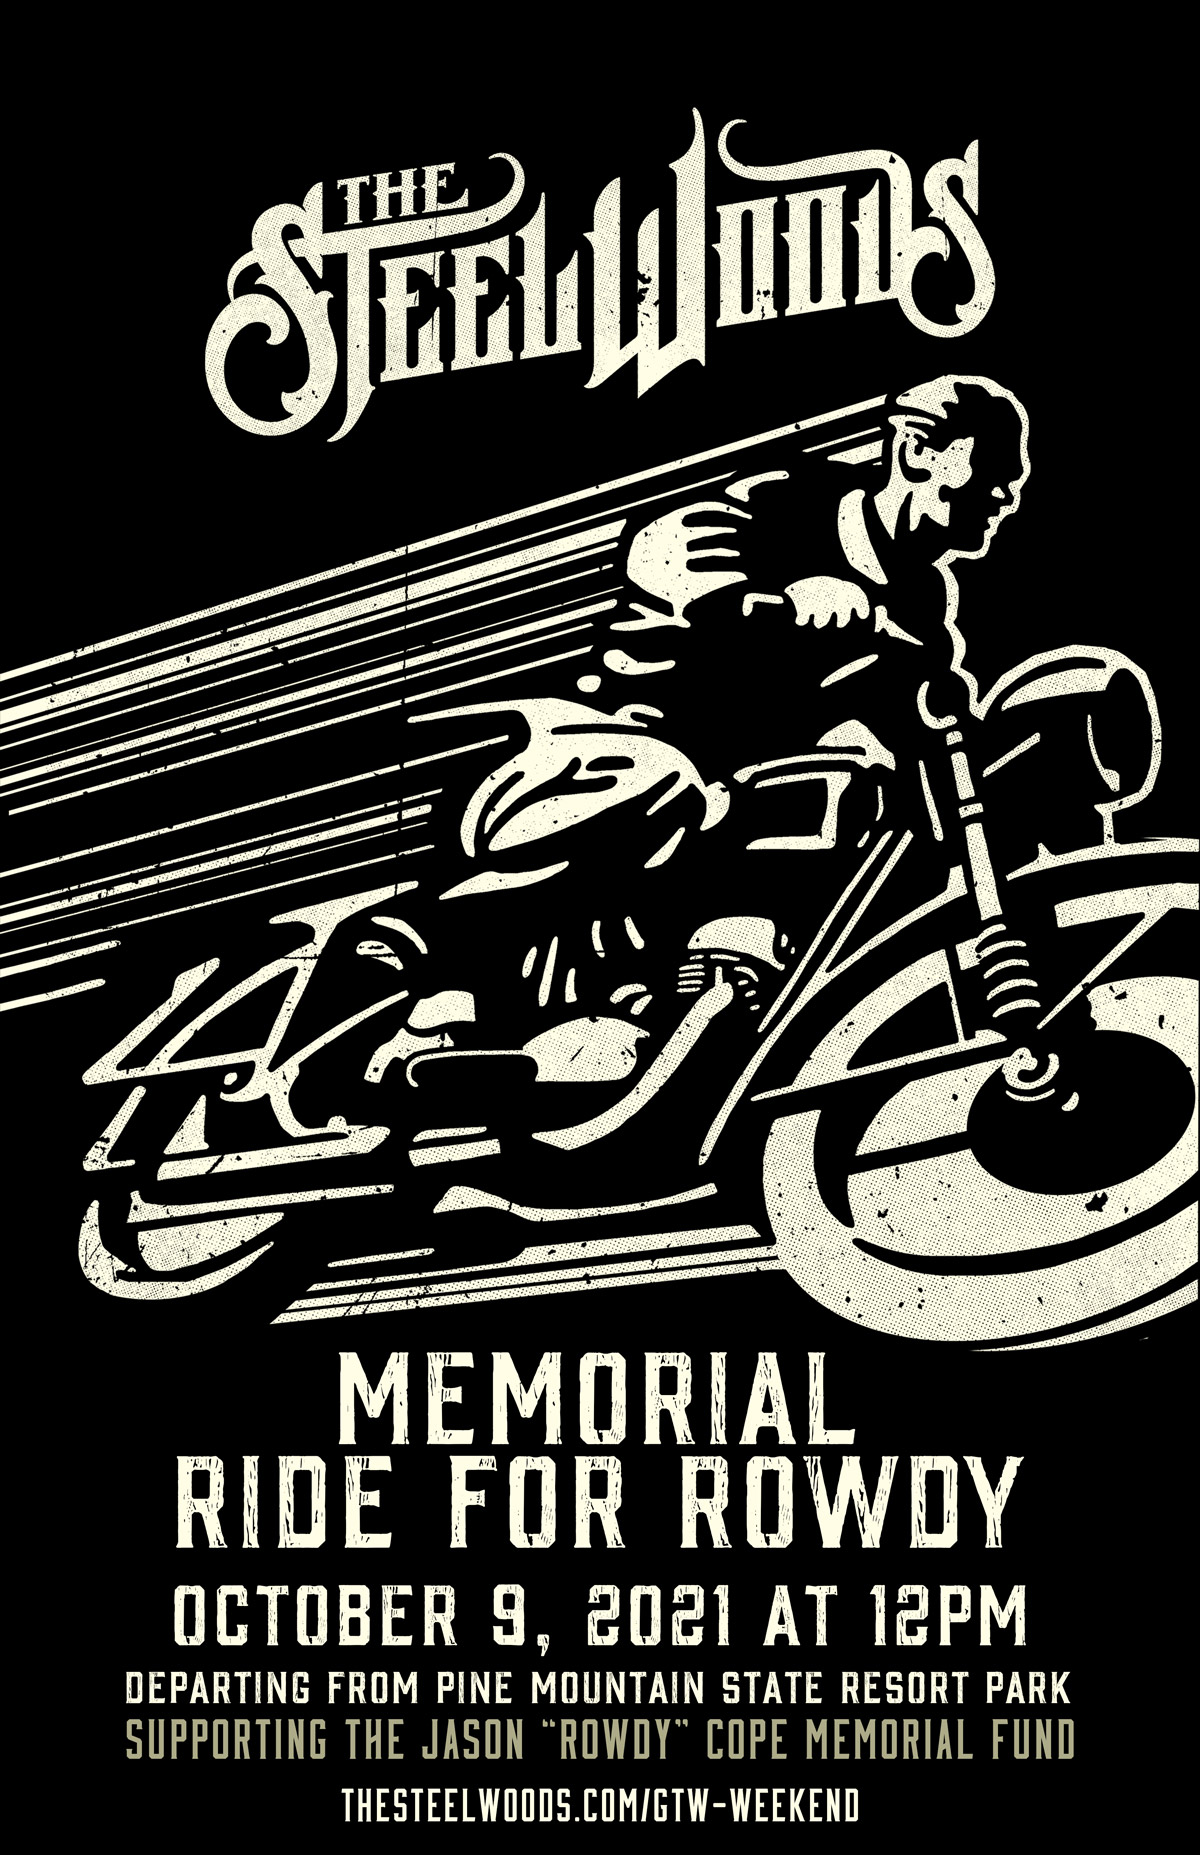 Memorial Ride For Rowdy, October 9, 2021 at 12pm - Departing from Pine Mountain State resort Park - Supporting the Jason Rowdy Cope Memorial Fund